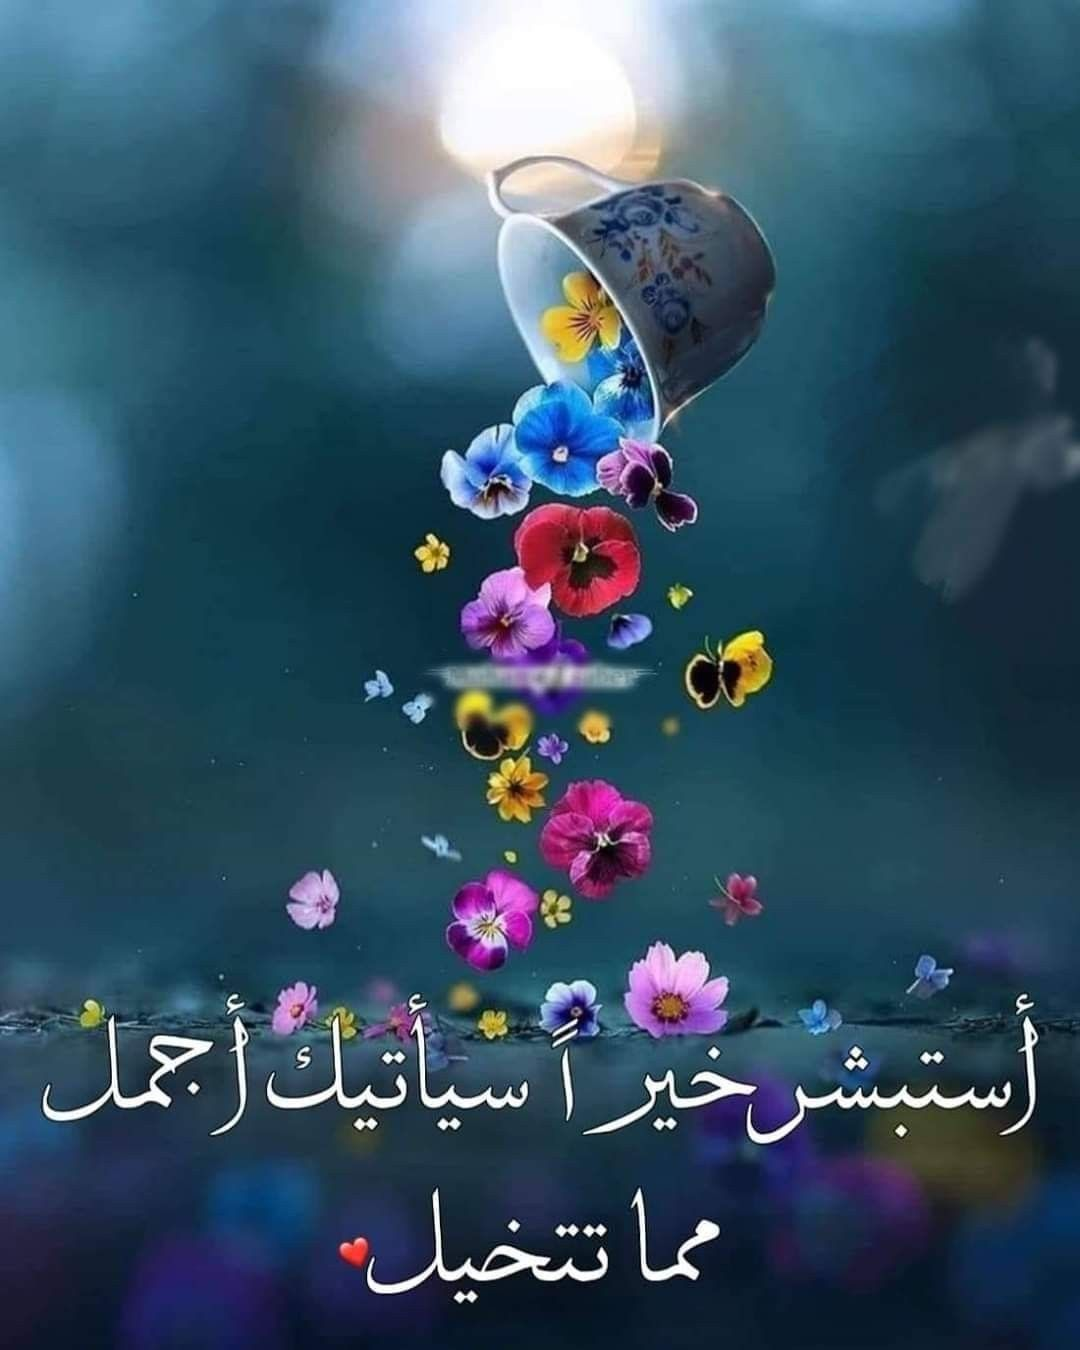 Pin By Marwa Sami On يقين بالله Instagram Art Colorful Backgrounds Artist Websites